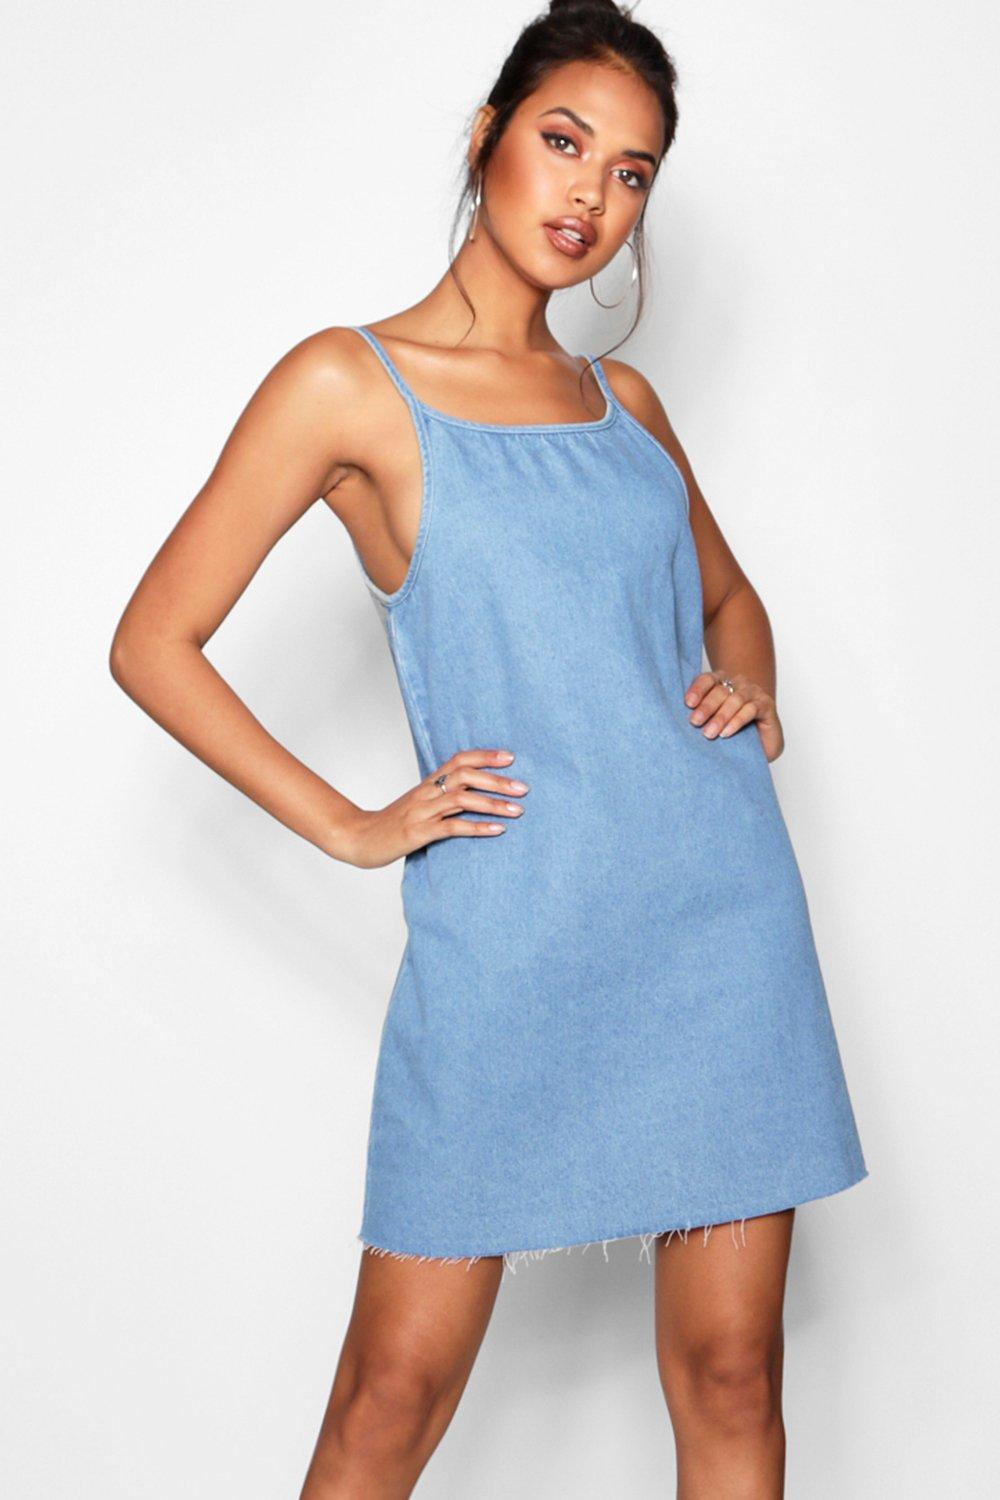 f55495c68f Loose Low Back Strappy Denim Dress. Hover to zoom